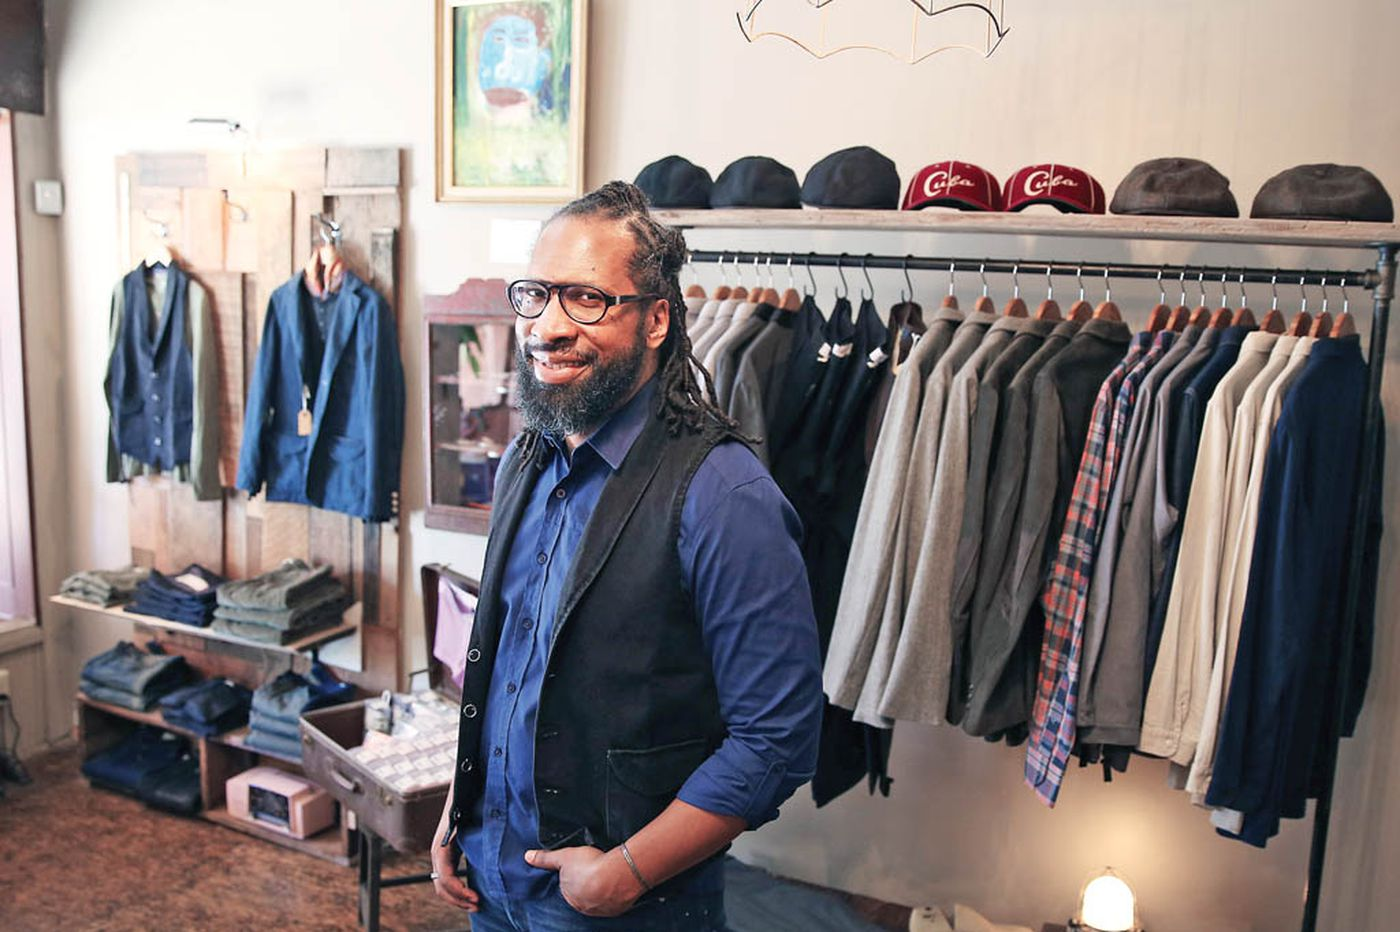 Stylish men's threads complemented by local art